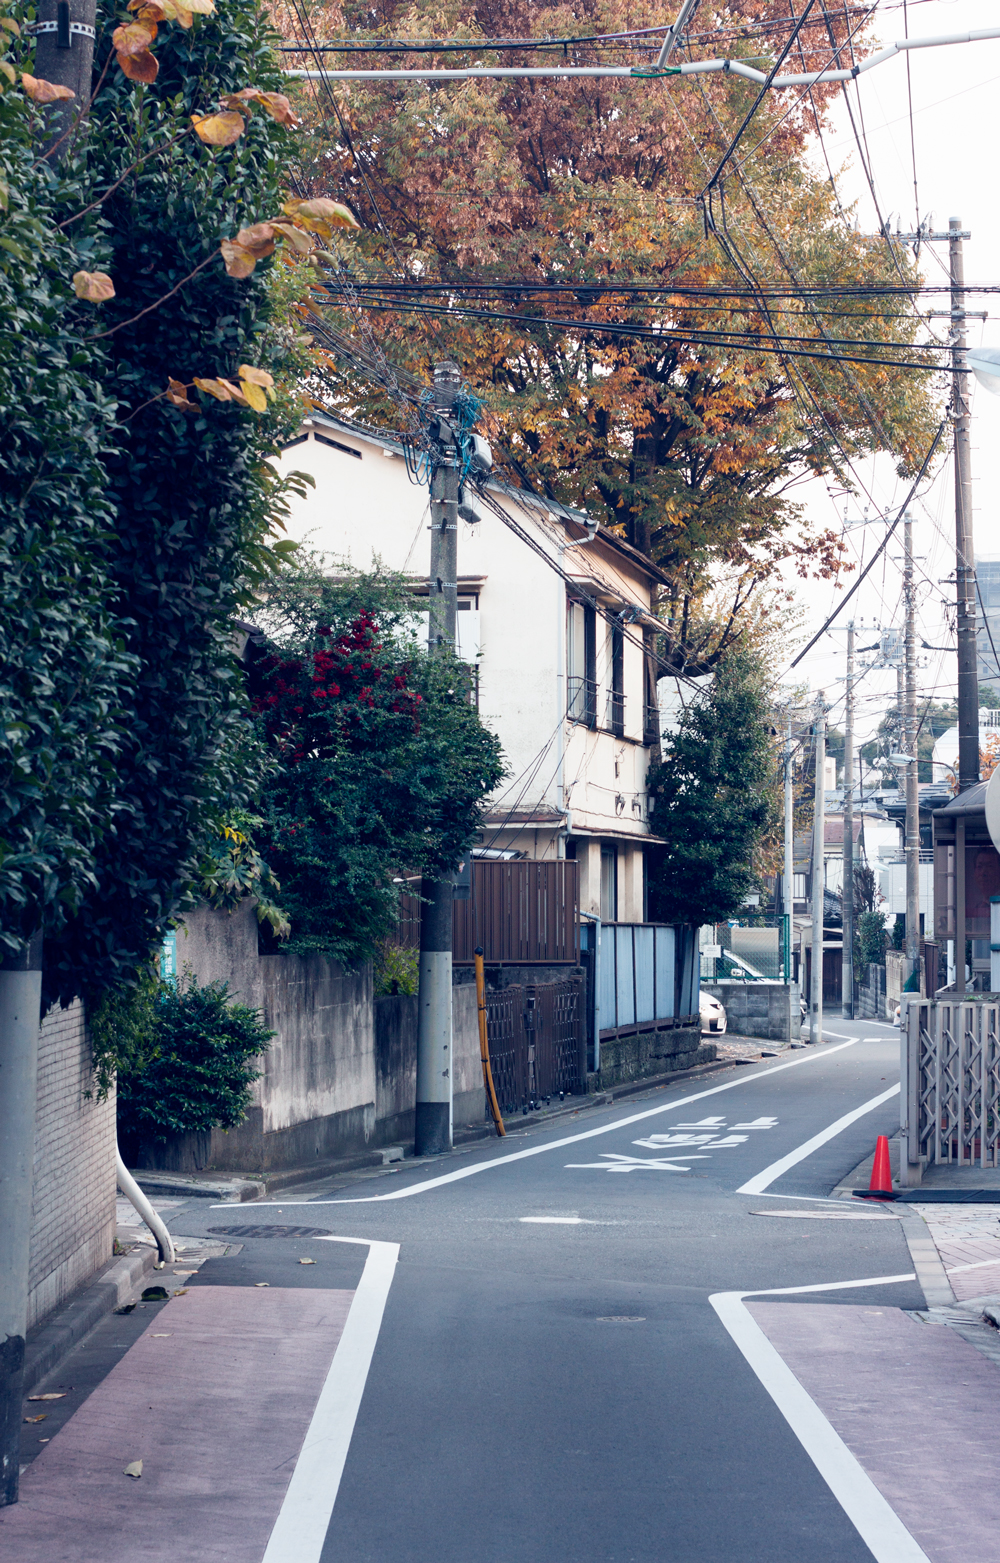 typical neighborhood street in tokyo, japan